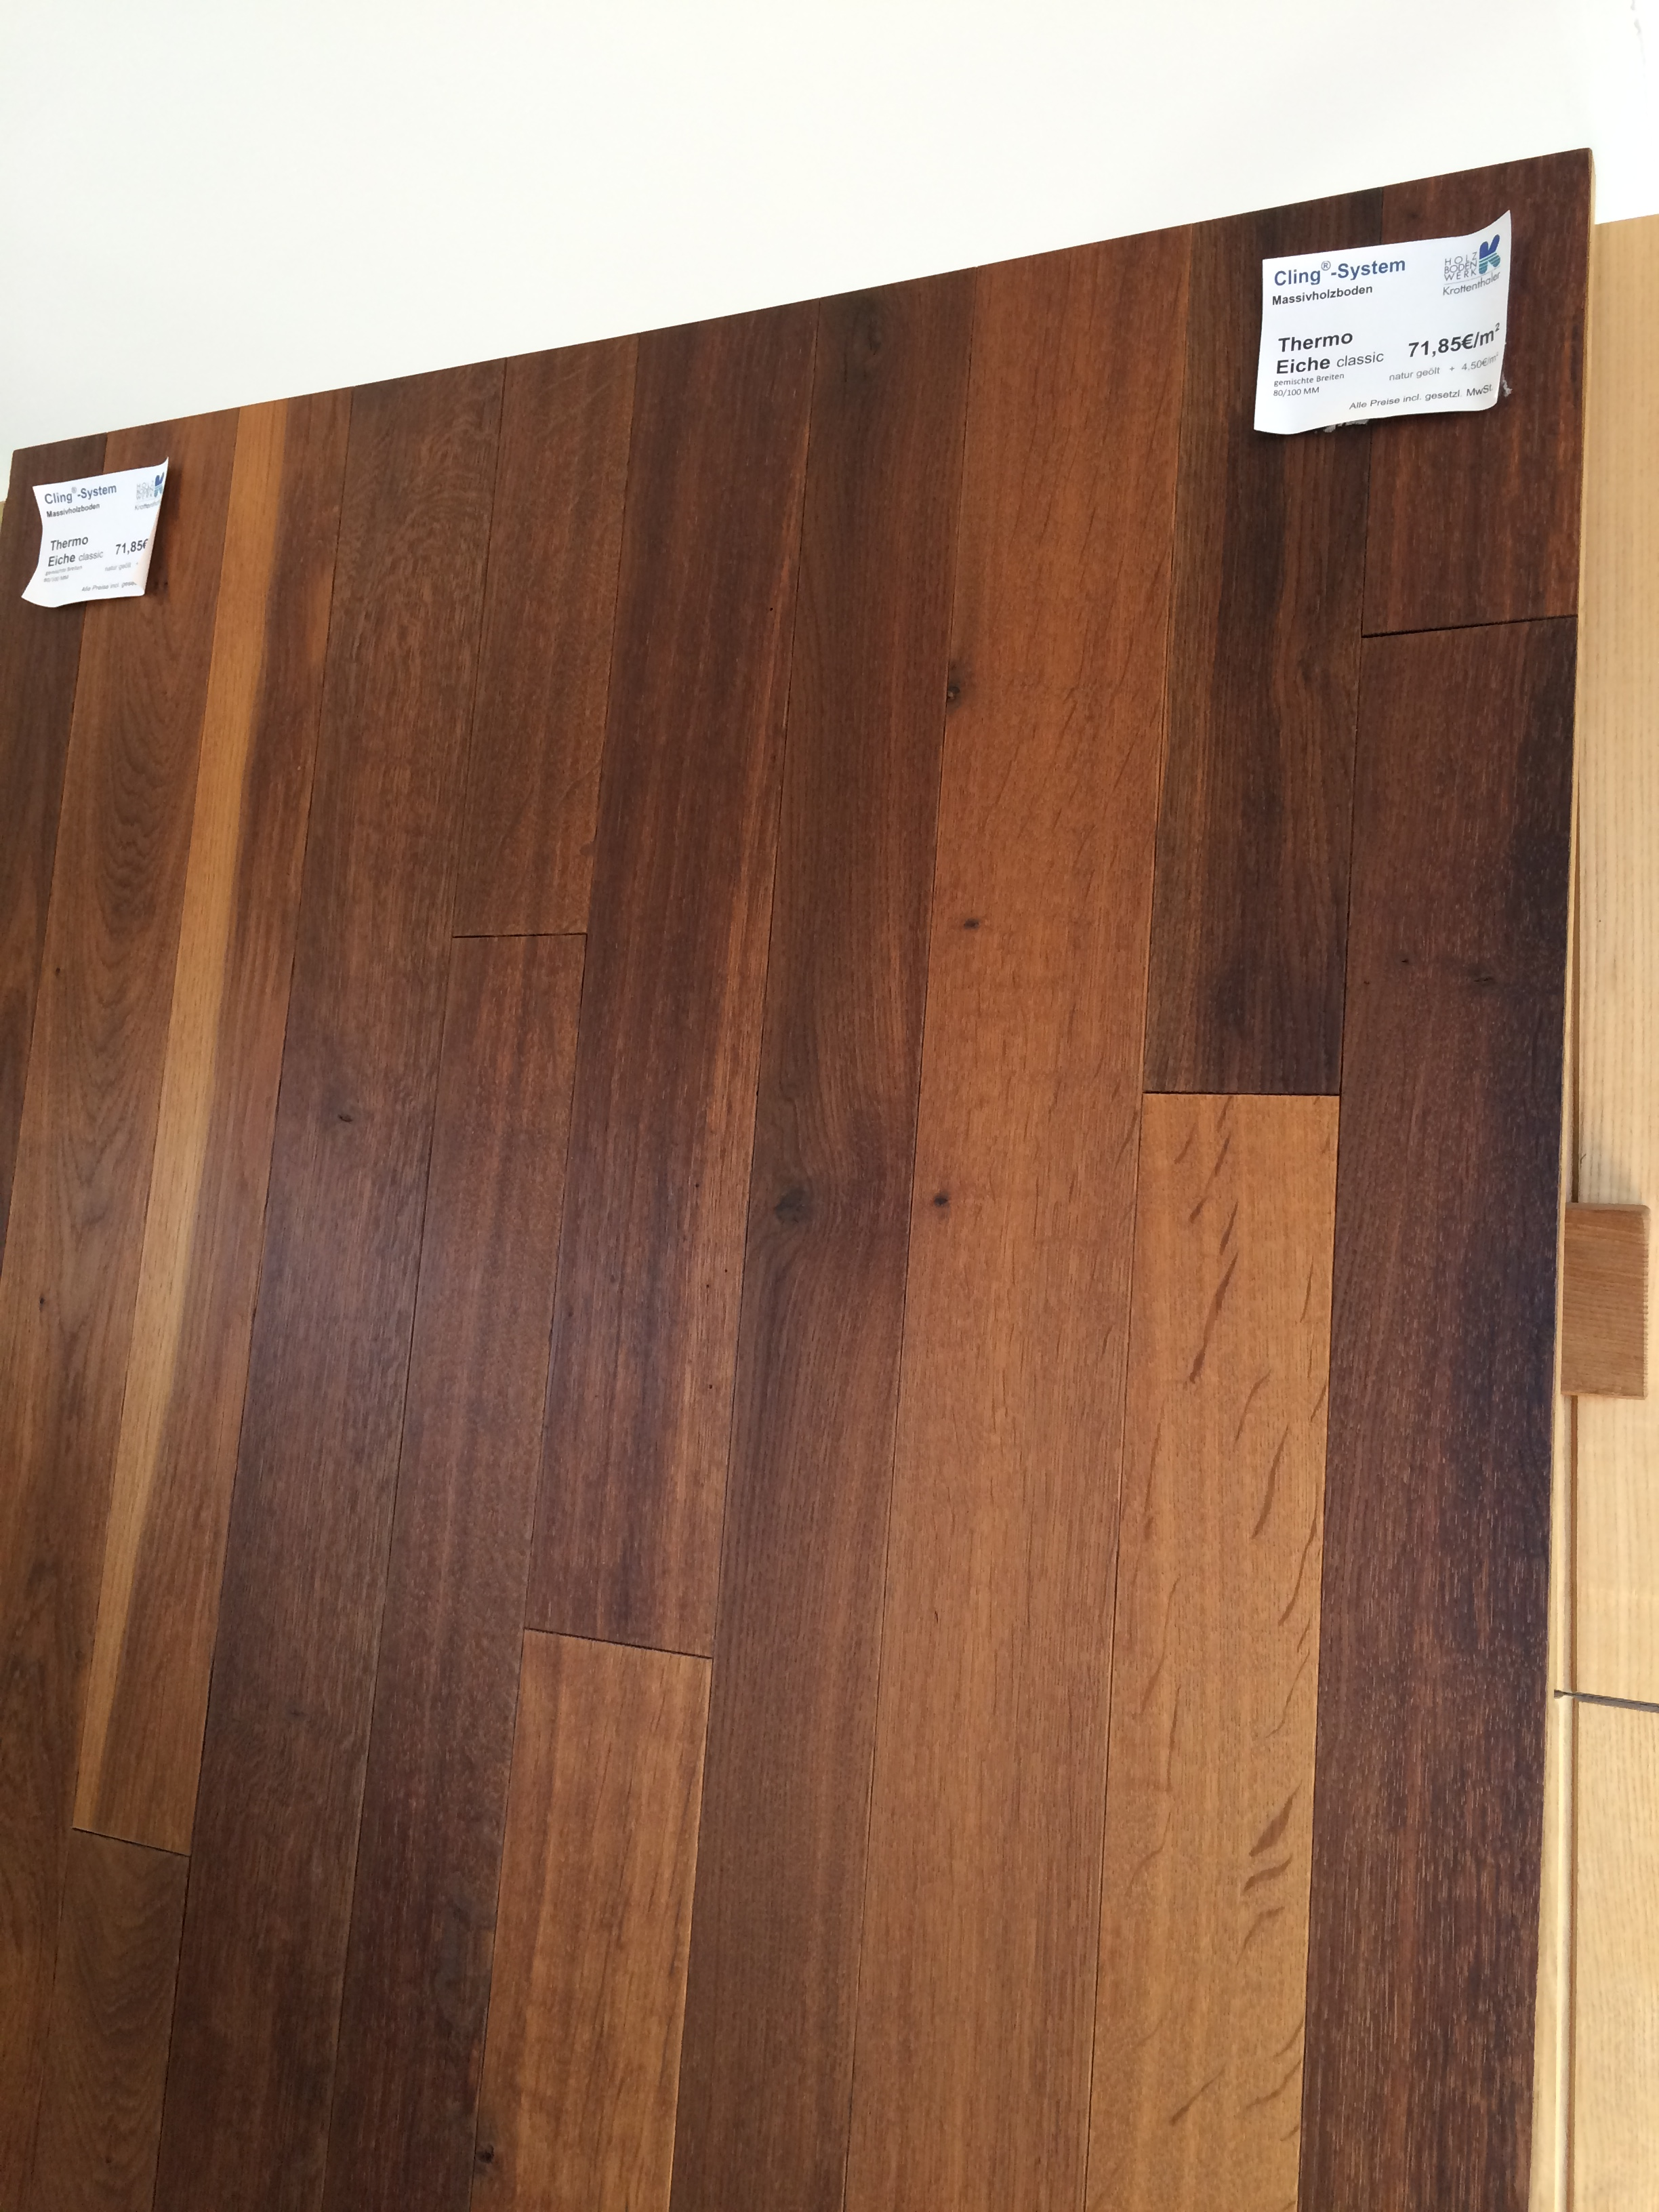 TMT Lumber - treated - Red Oak Flooring (1)